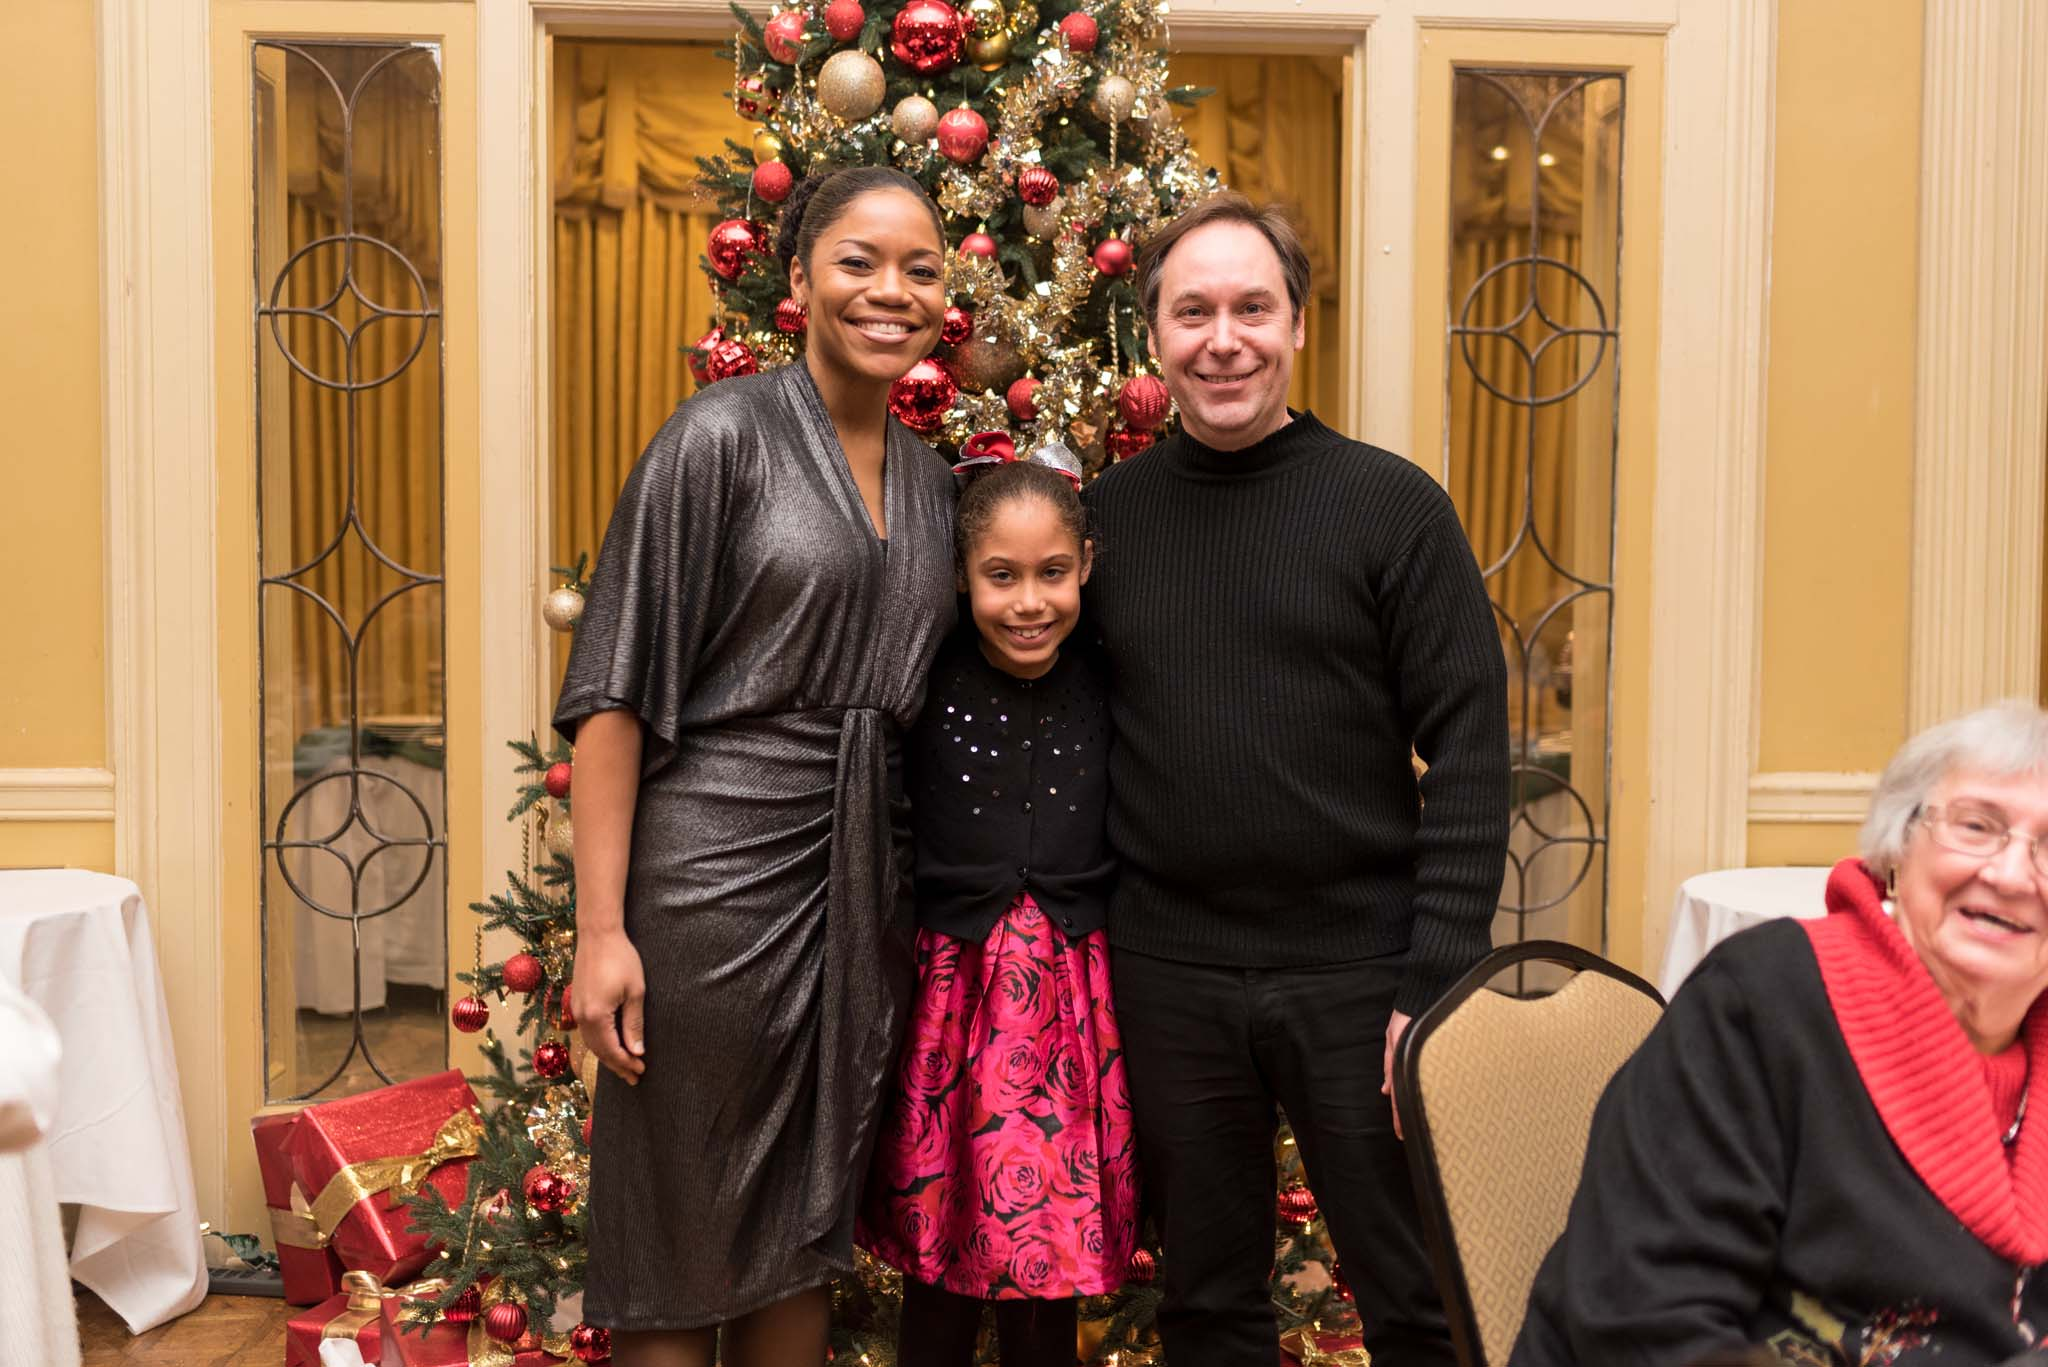 Candace Taylor with Miriam and Marc André Bougie